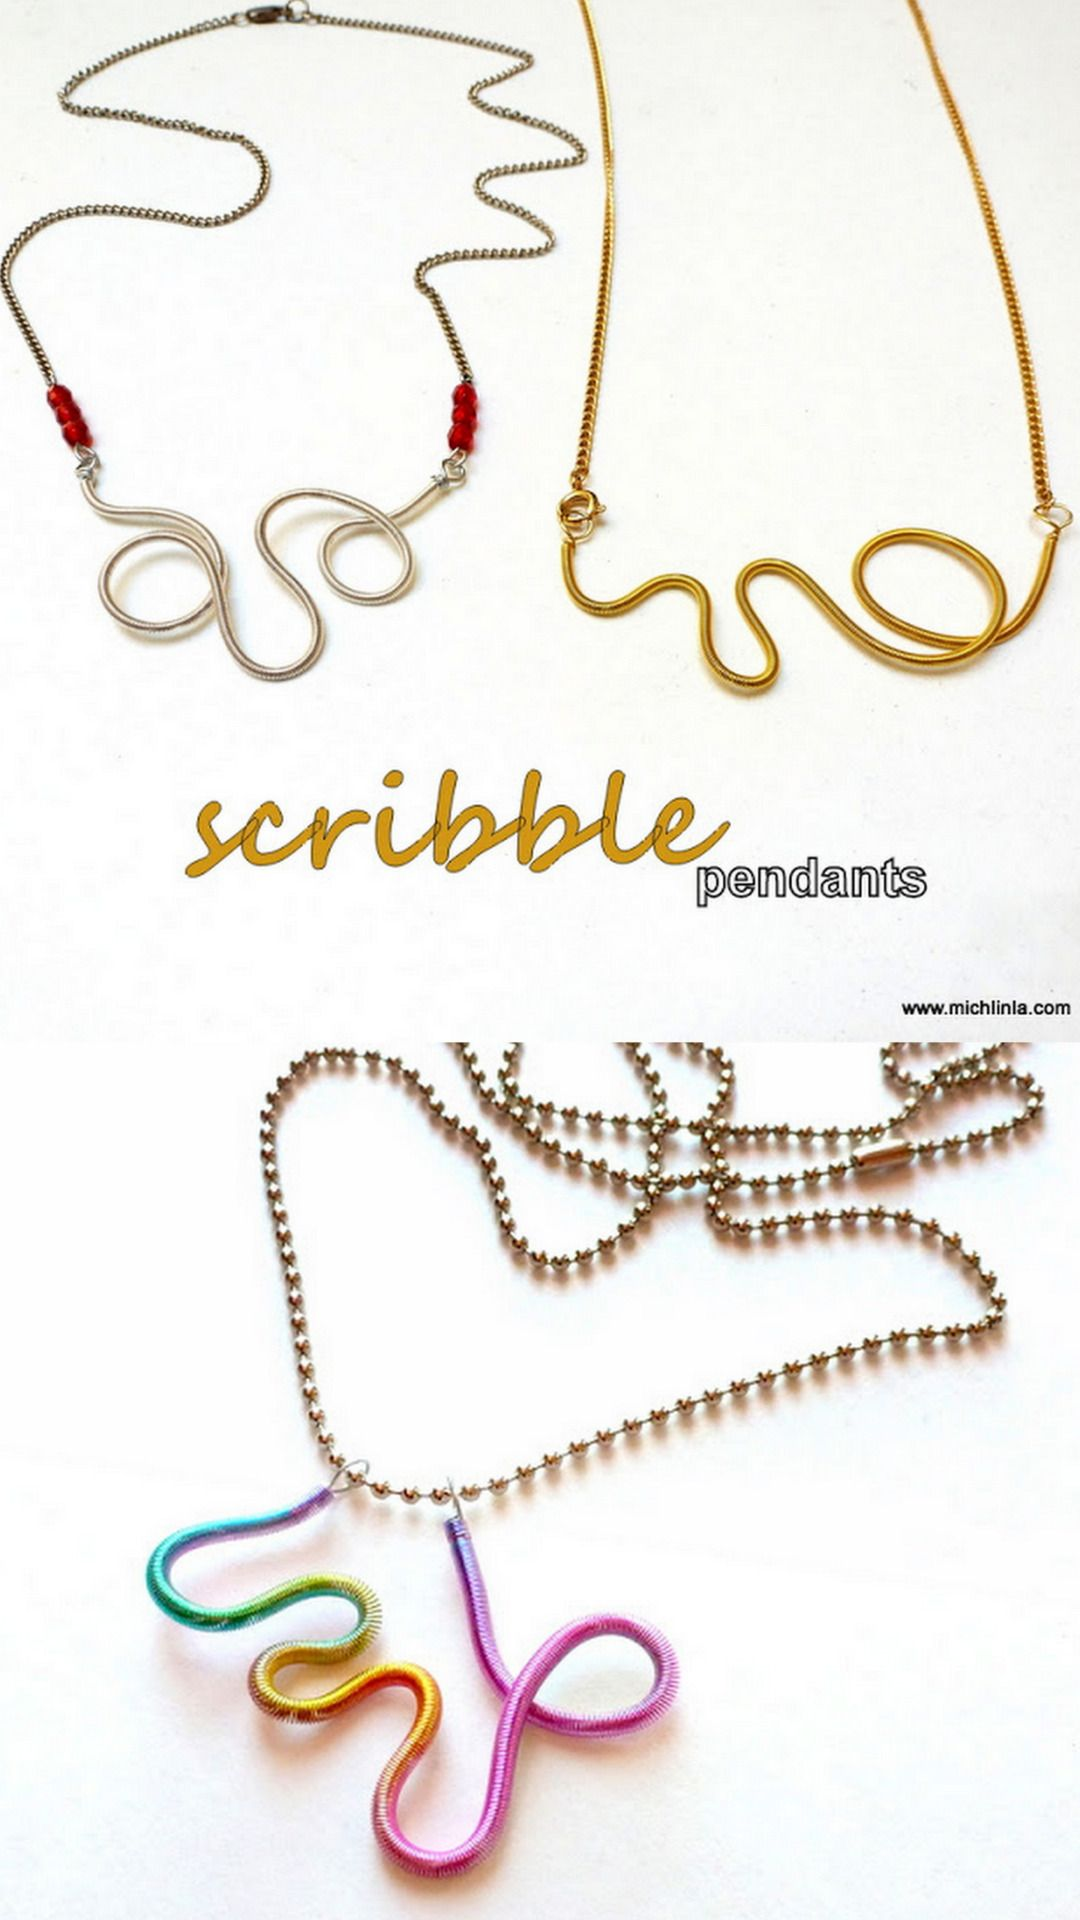 Diy wire free form coil necklace tutorial from mich l in la here